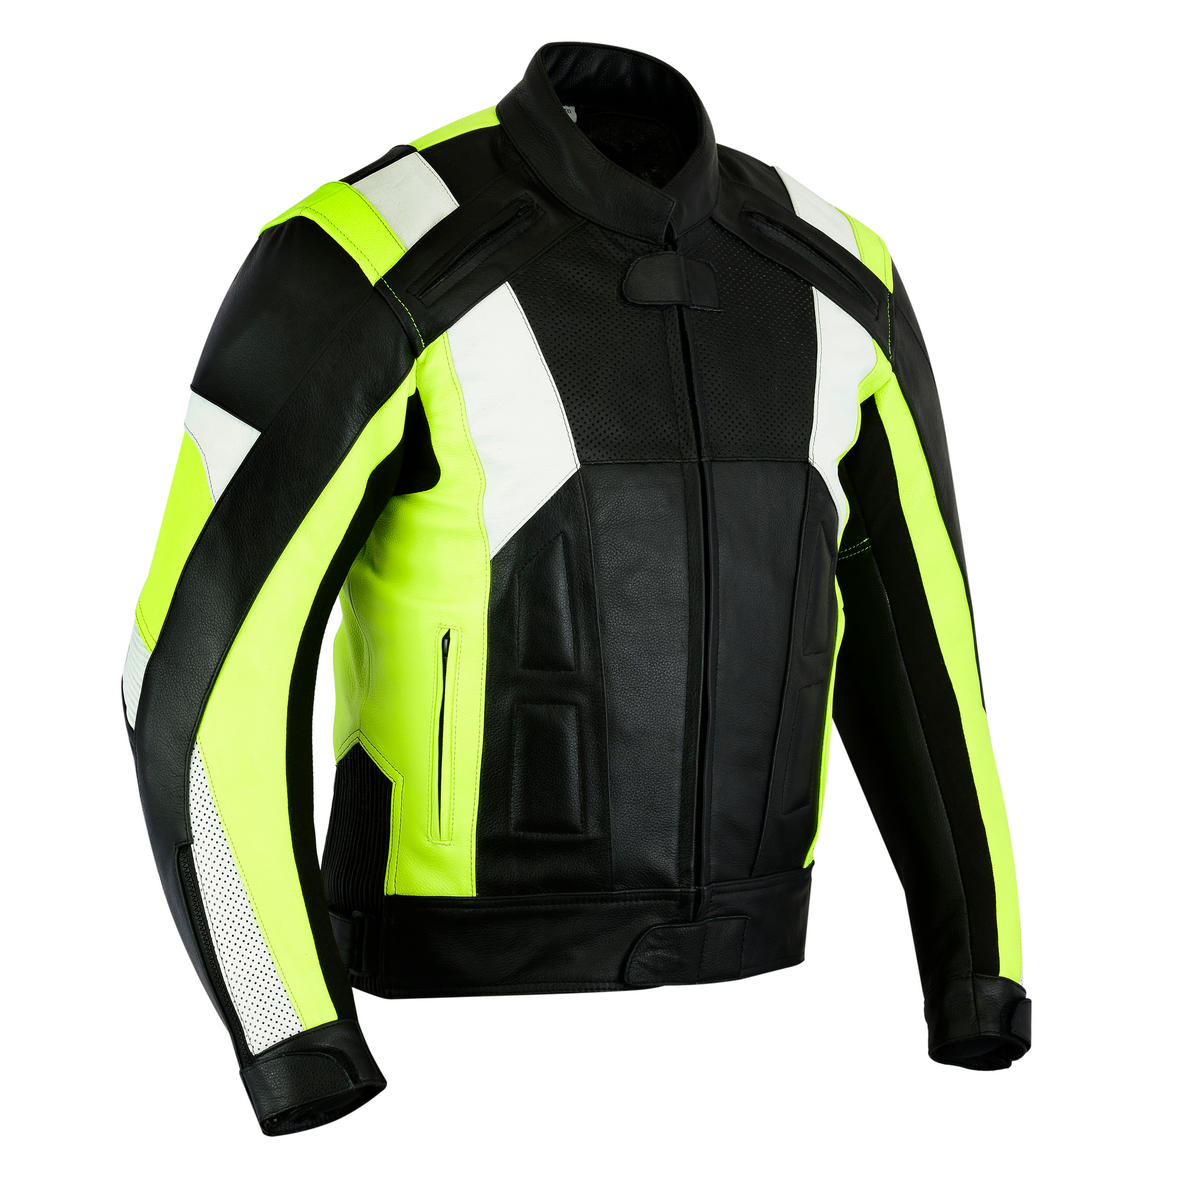 LJ-HV-BK (Yellow Racing Leather Jacket)